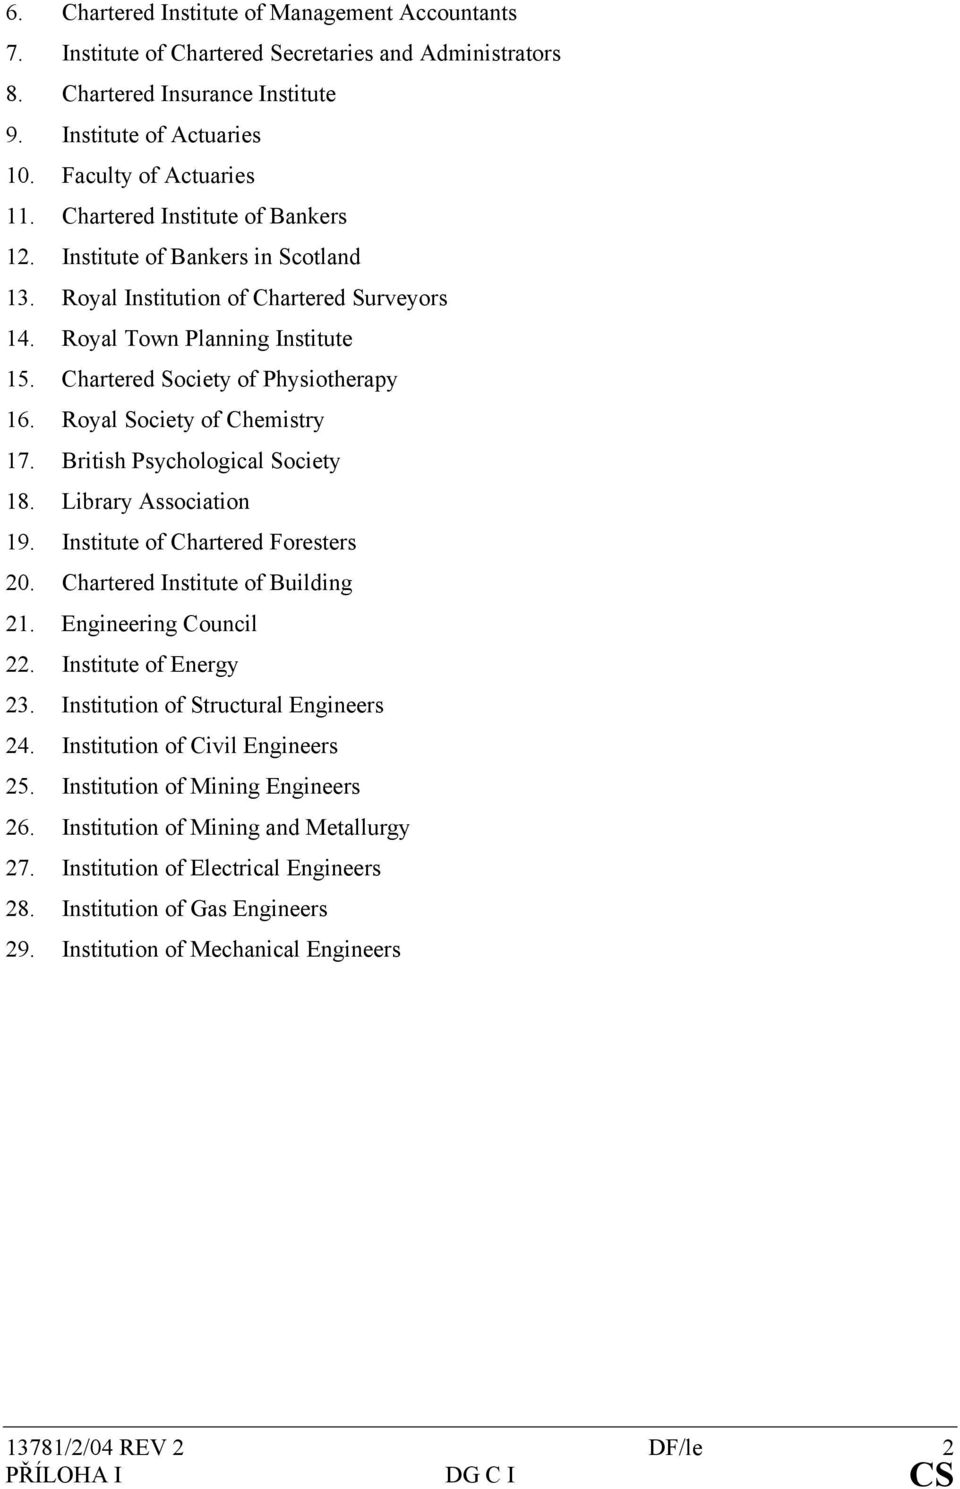 Royal Society of Chemistry 17. British Psychological Society 18. Library Association 19. Institute of Chartered Foresters 20. Chartered Institute of Building 21. Engineering Council 22.